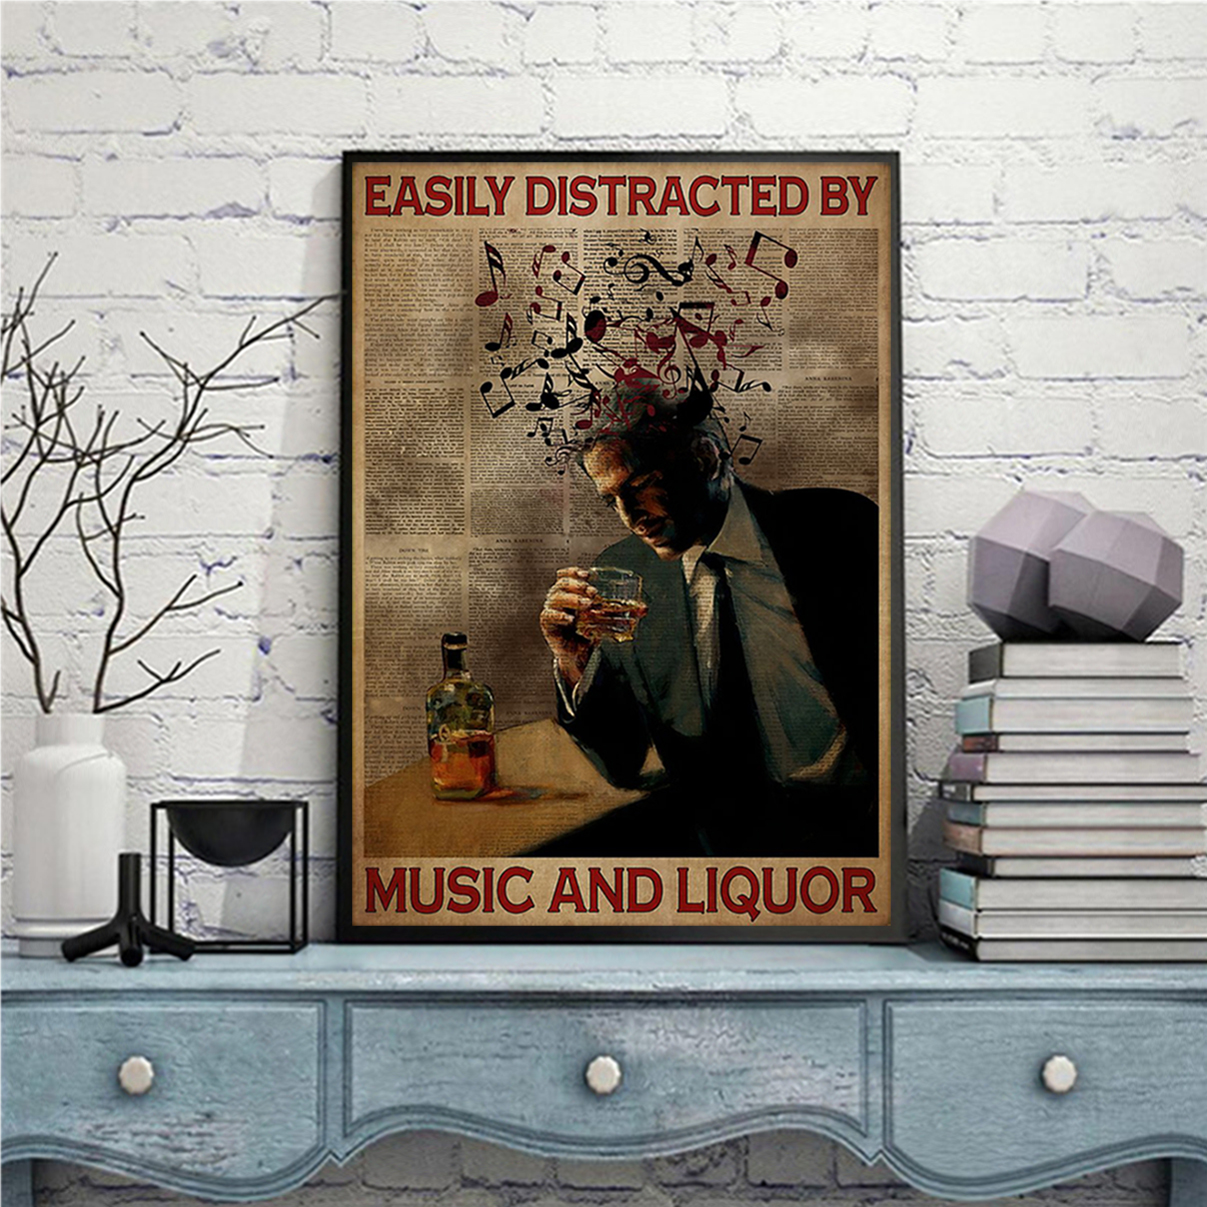 Man easily distracted by music and liquor poster A1